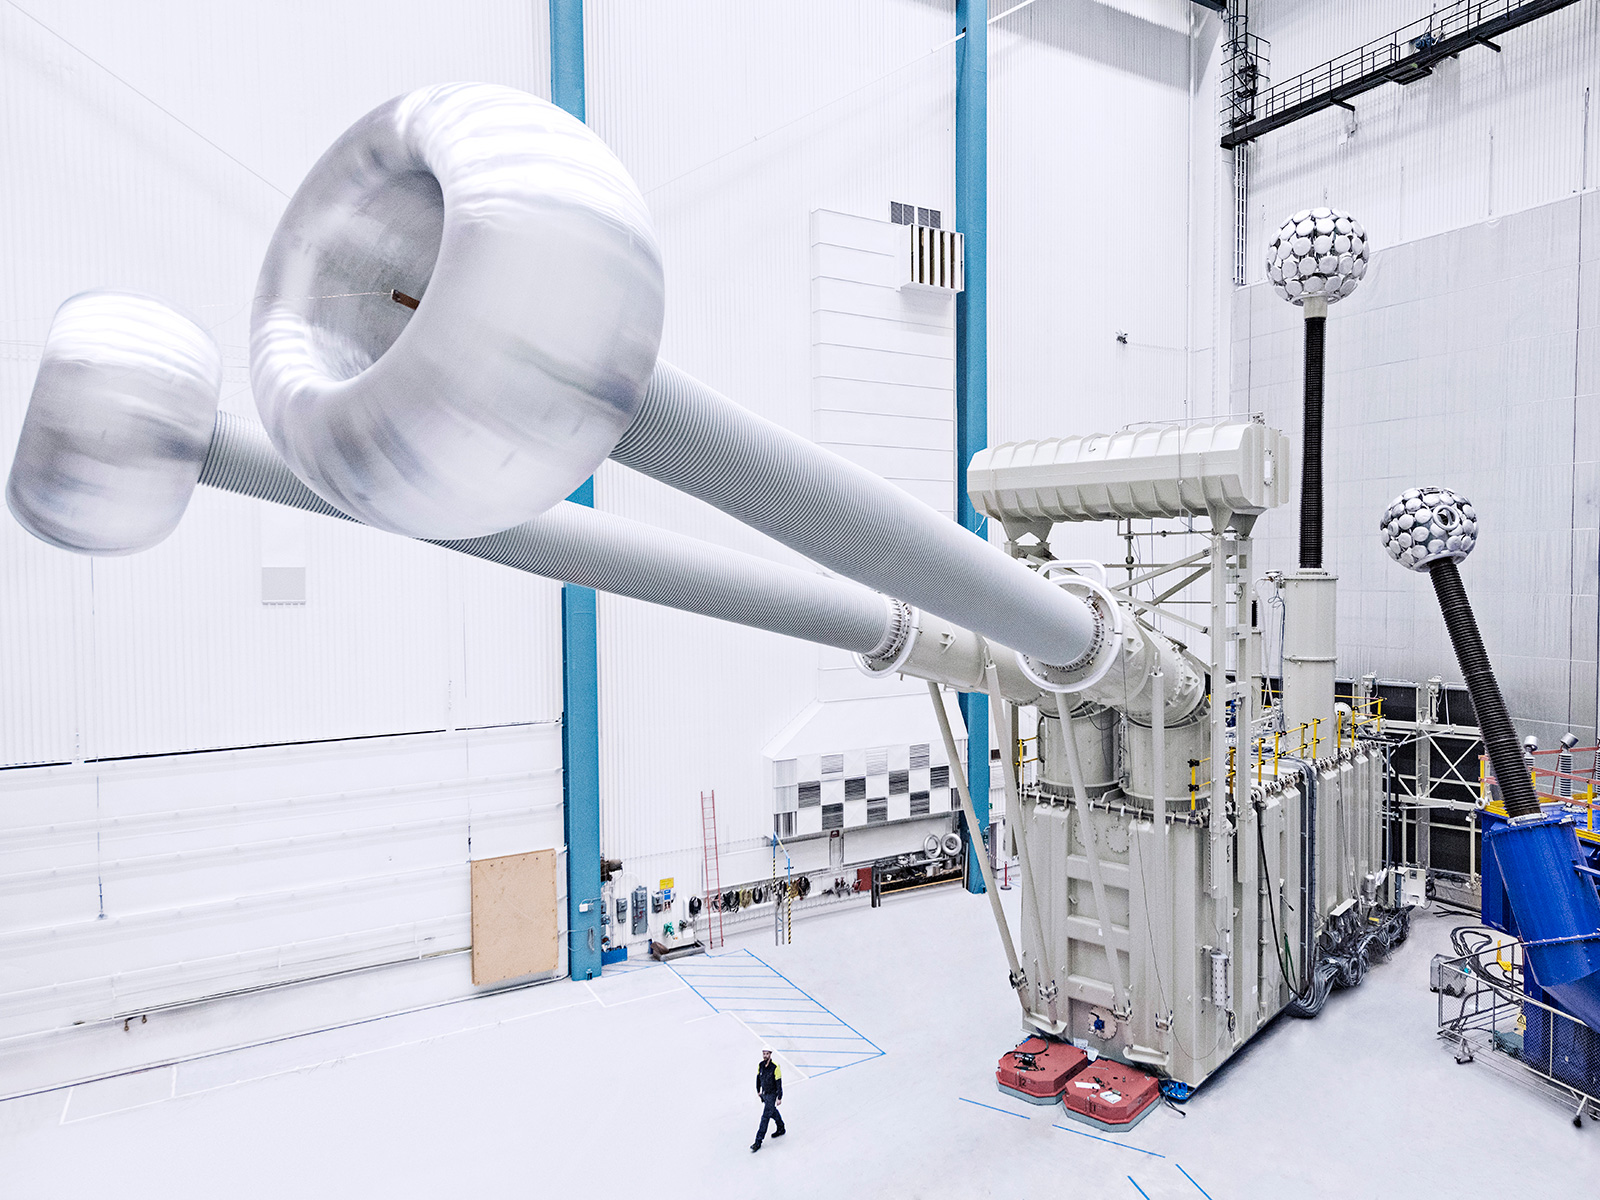 small resolution of abb has set another pioneering innovation record with the successful testing of the low and high voltage units of the world s most powerful